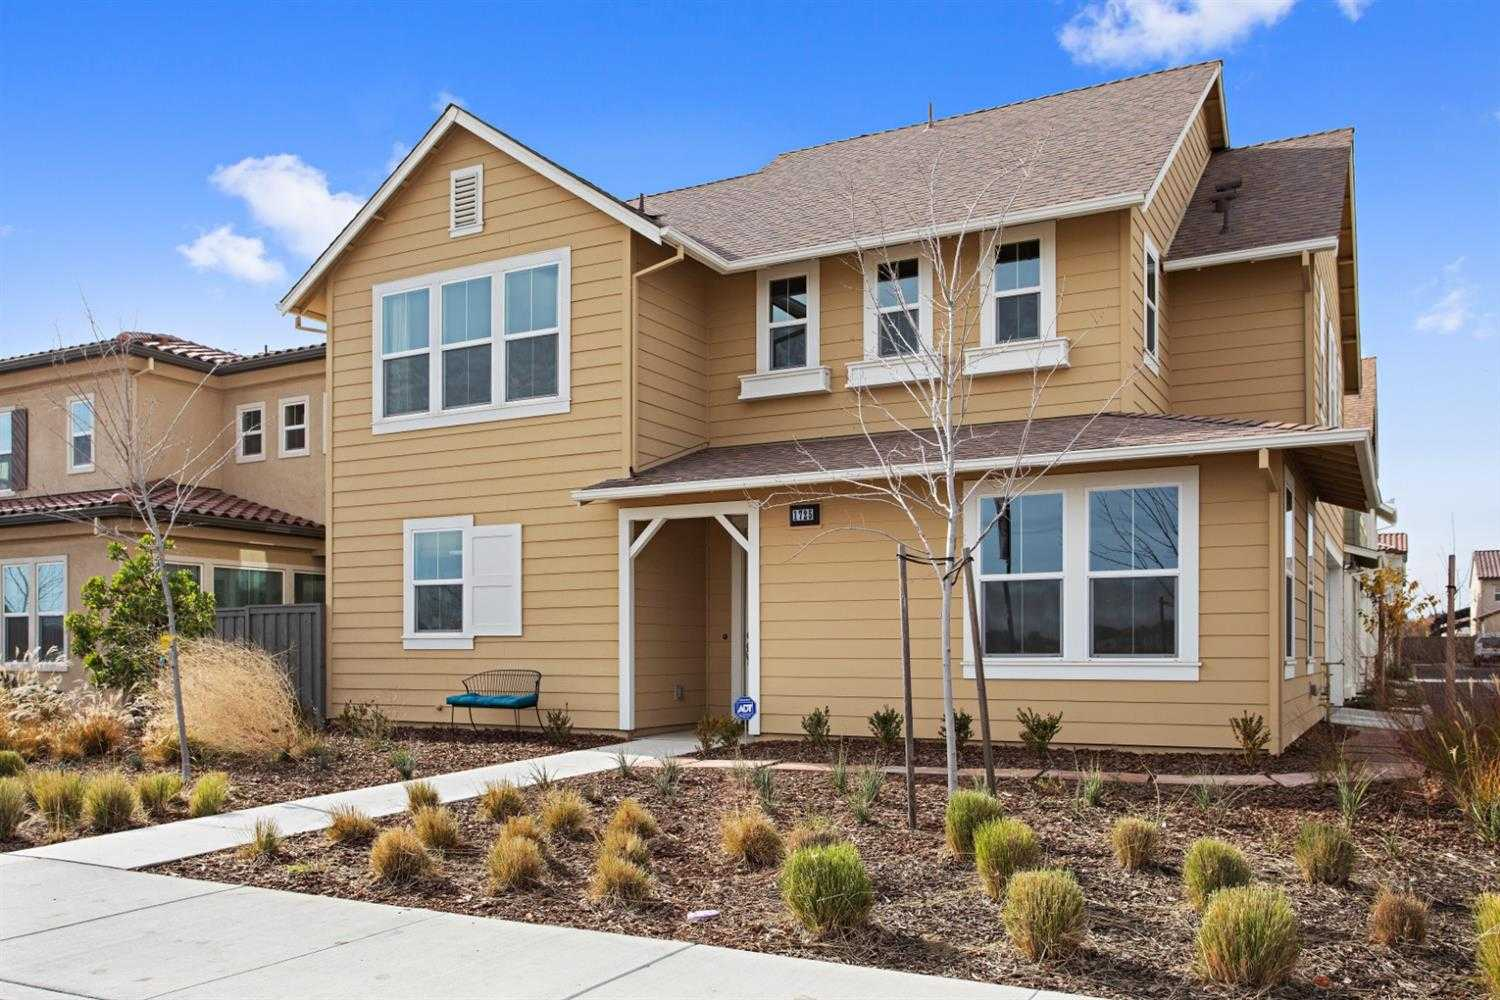 $780,000 - 4Br/3Ba -  for Sale in Cannery, Davis